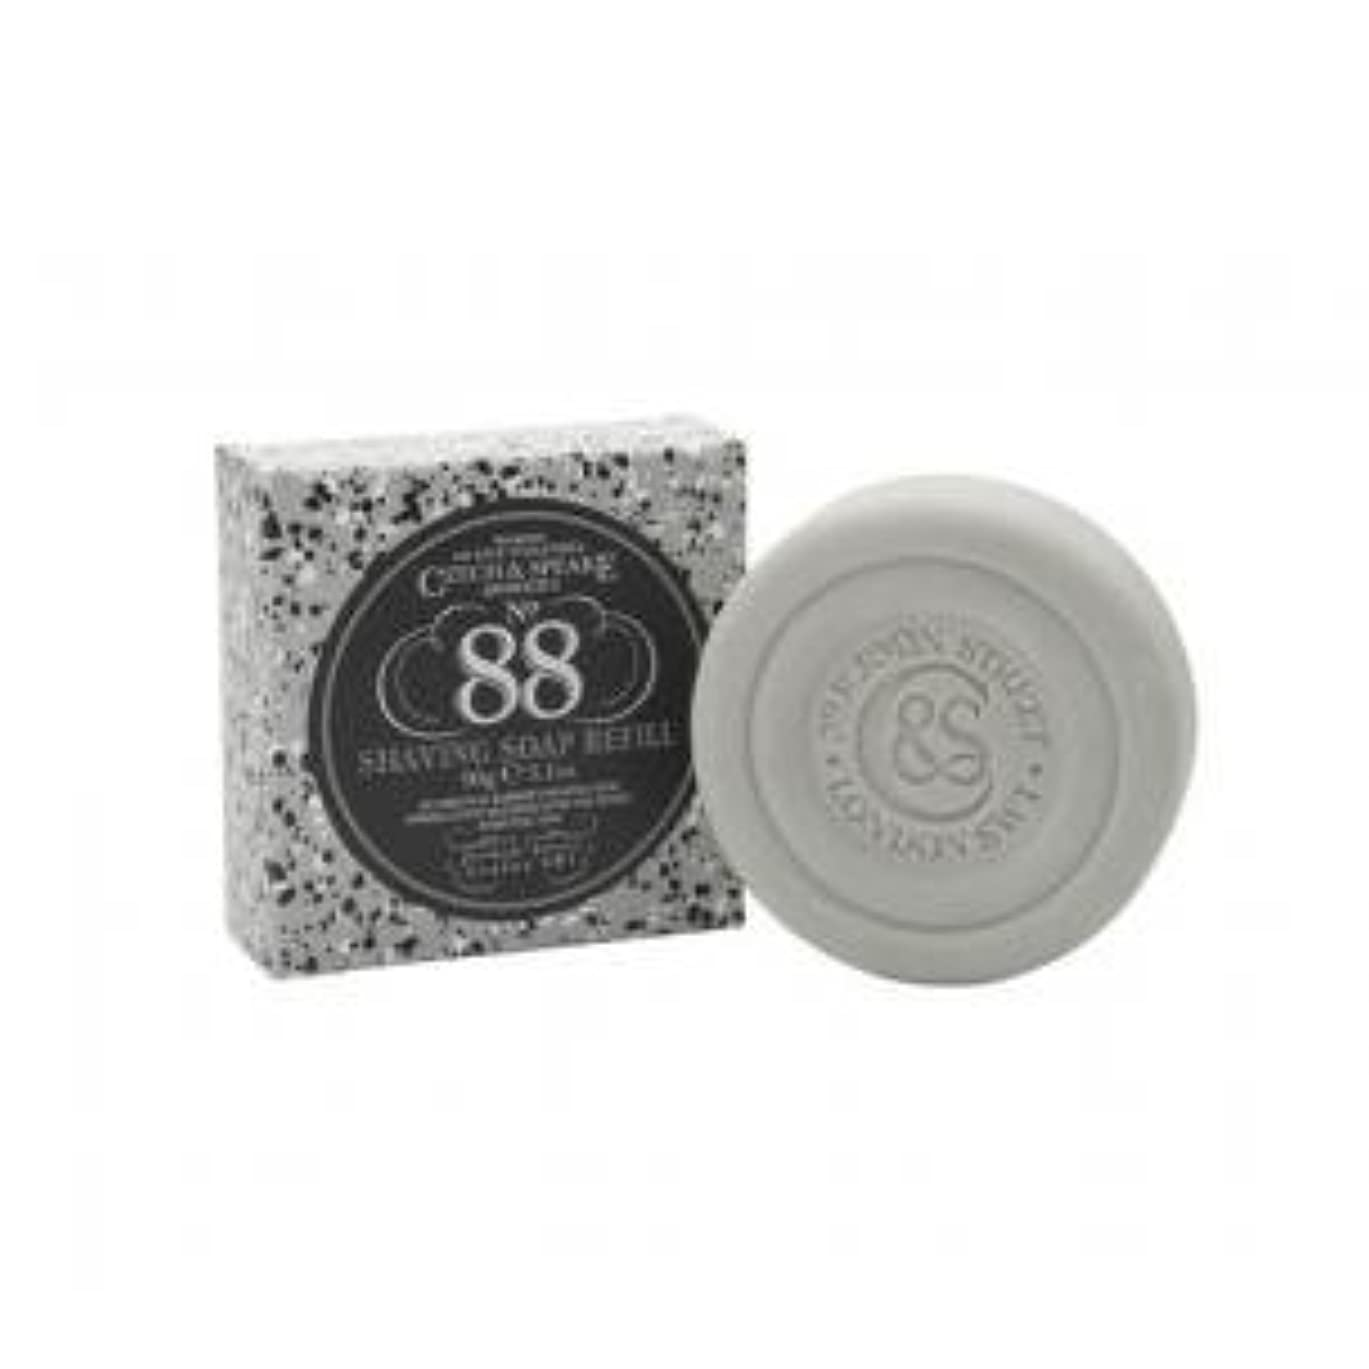 Czech and Speake NO88 SHAVING SOAP REFILL 90g [並行輸入品]